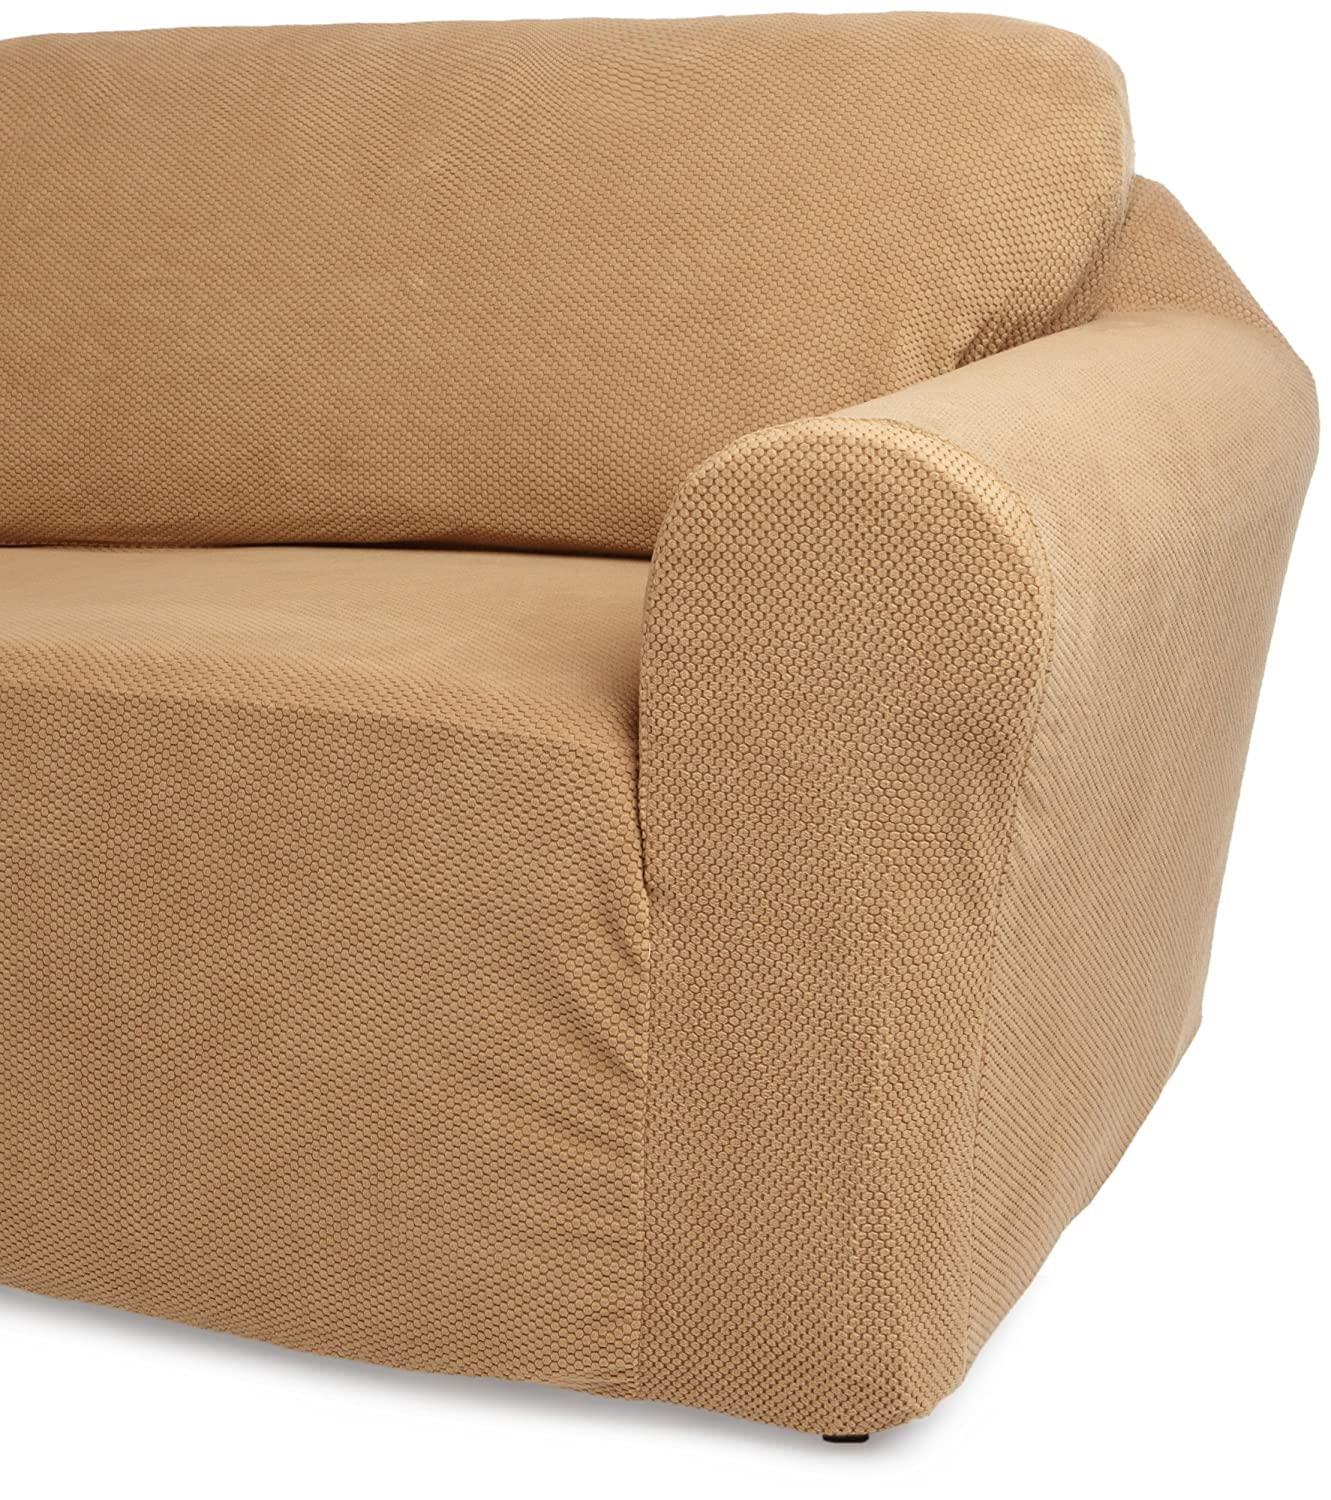 Amazon Classic Slipcovers 60 72 Inch Loveseat Cover